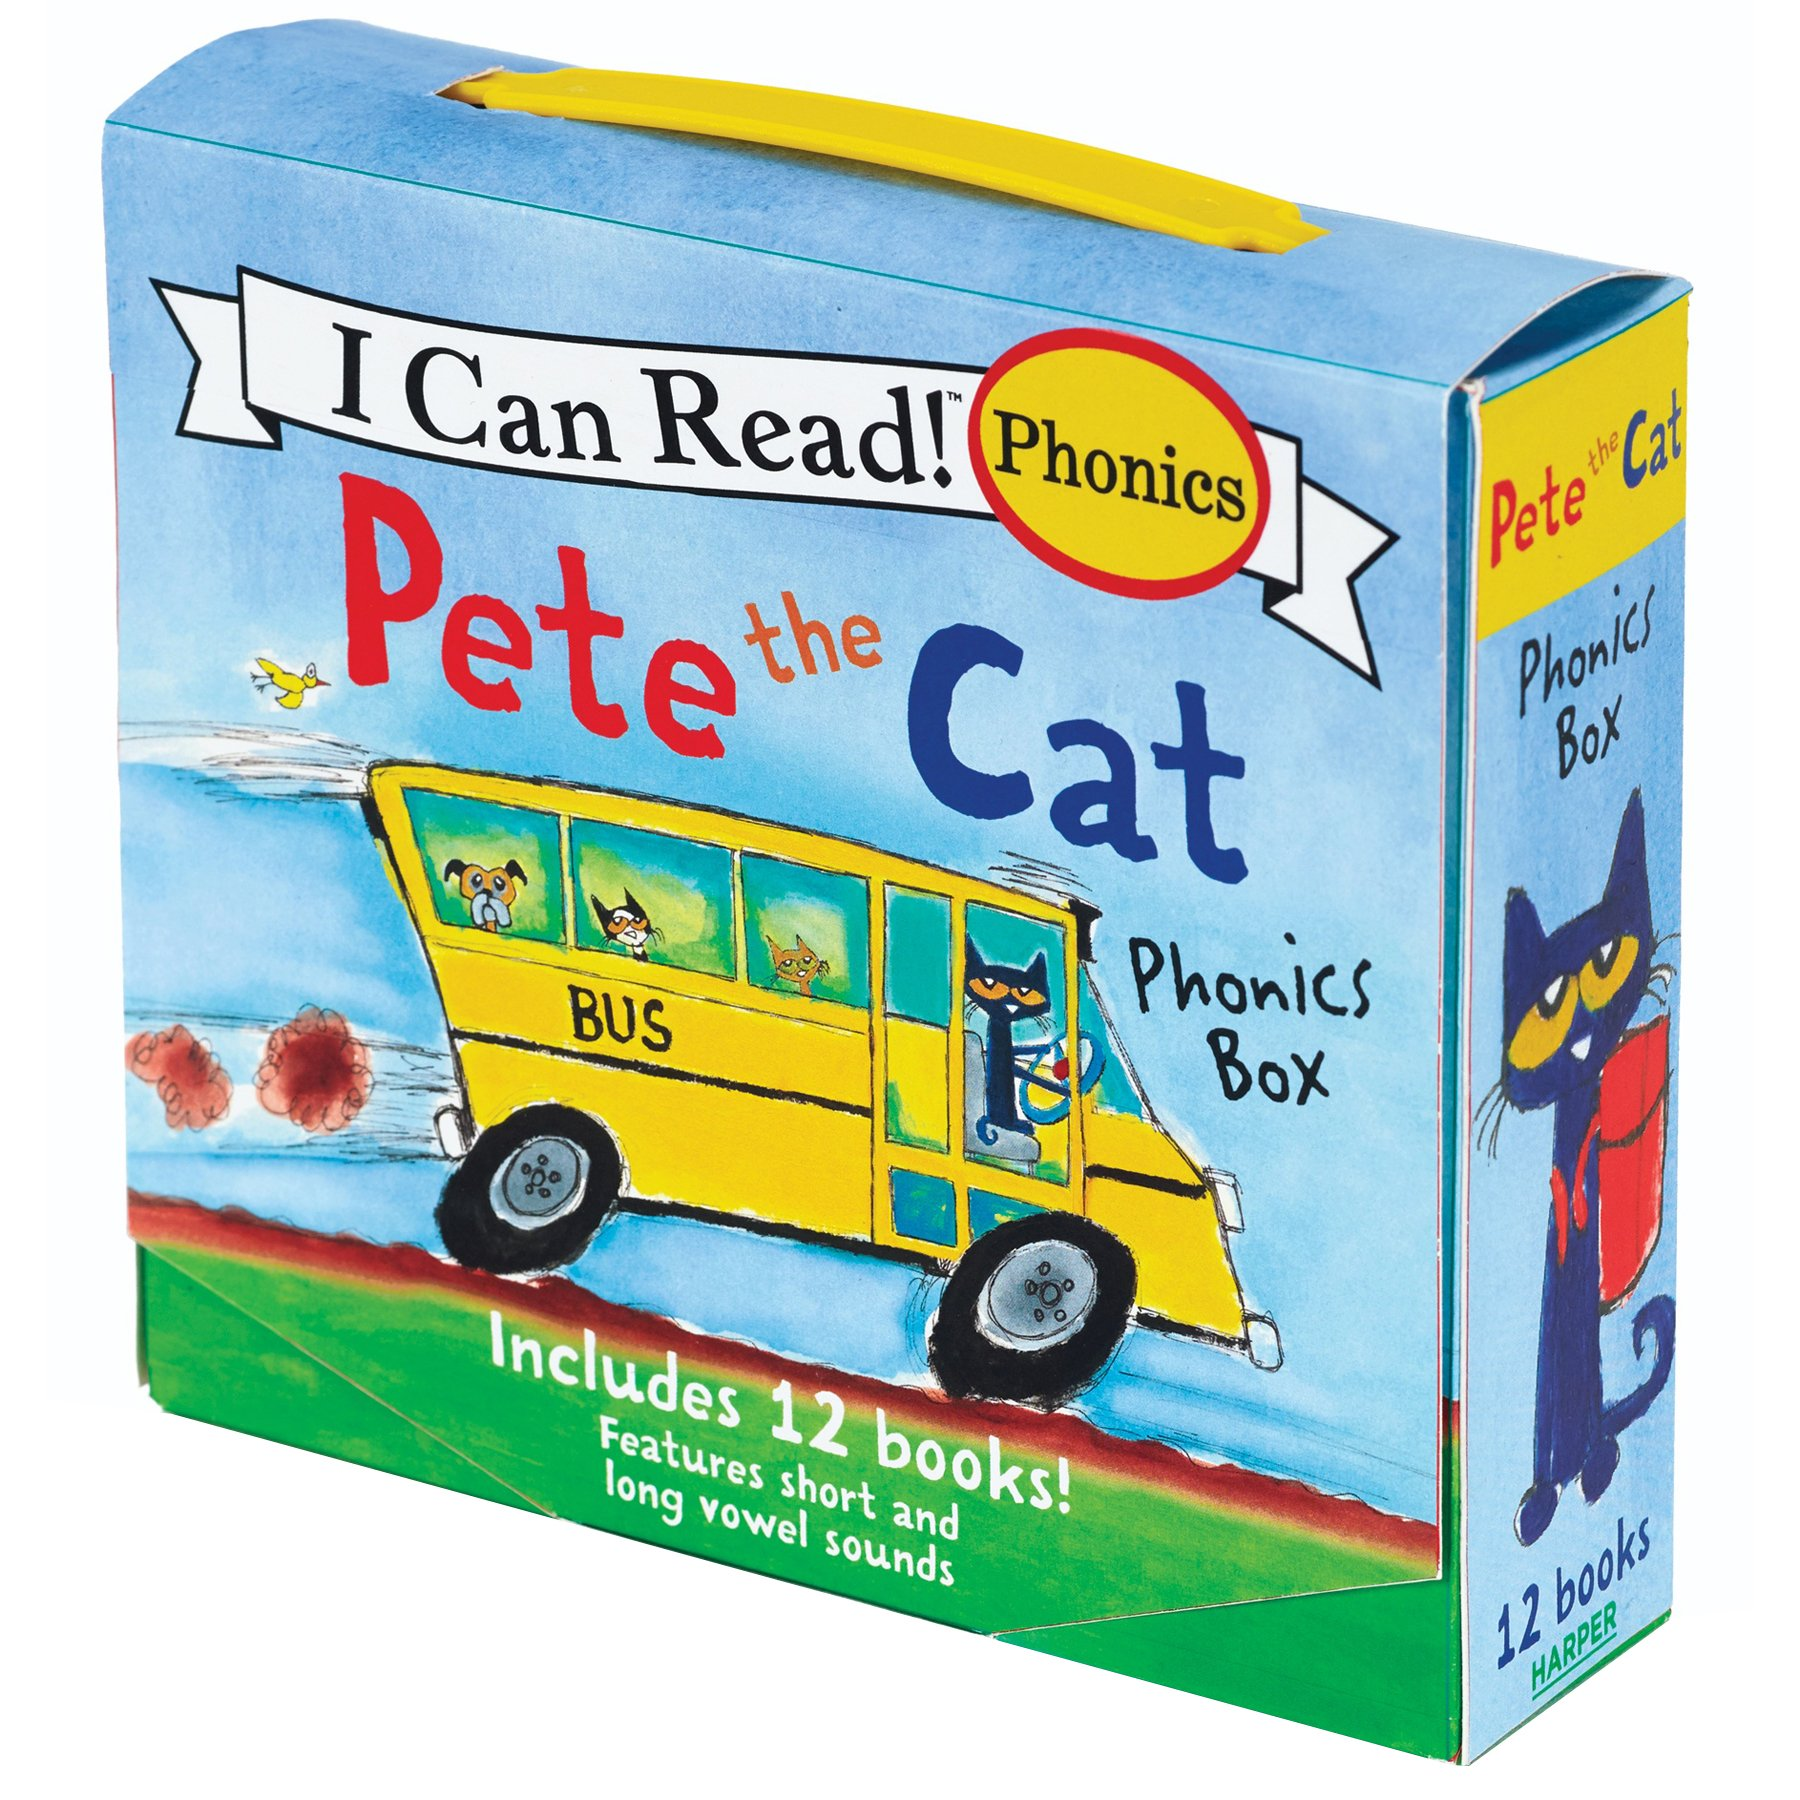 Includes 12 Mini-Books Featuring Short and Long Vowel Sounds Pete the Cat Phonics Box